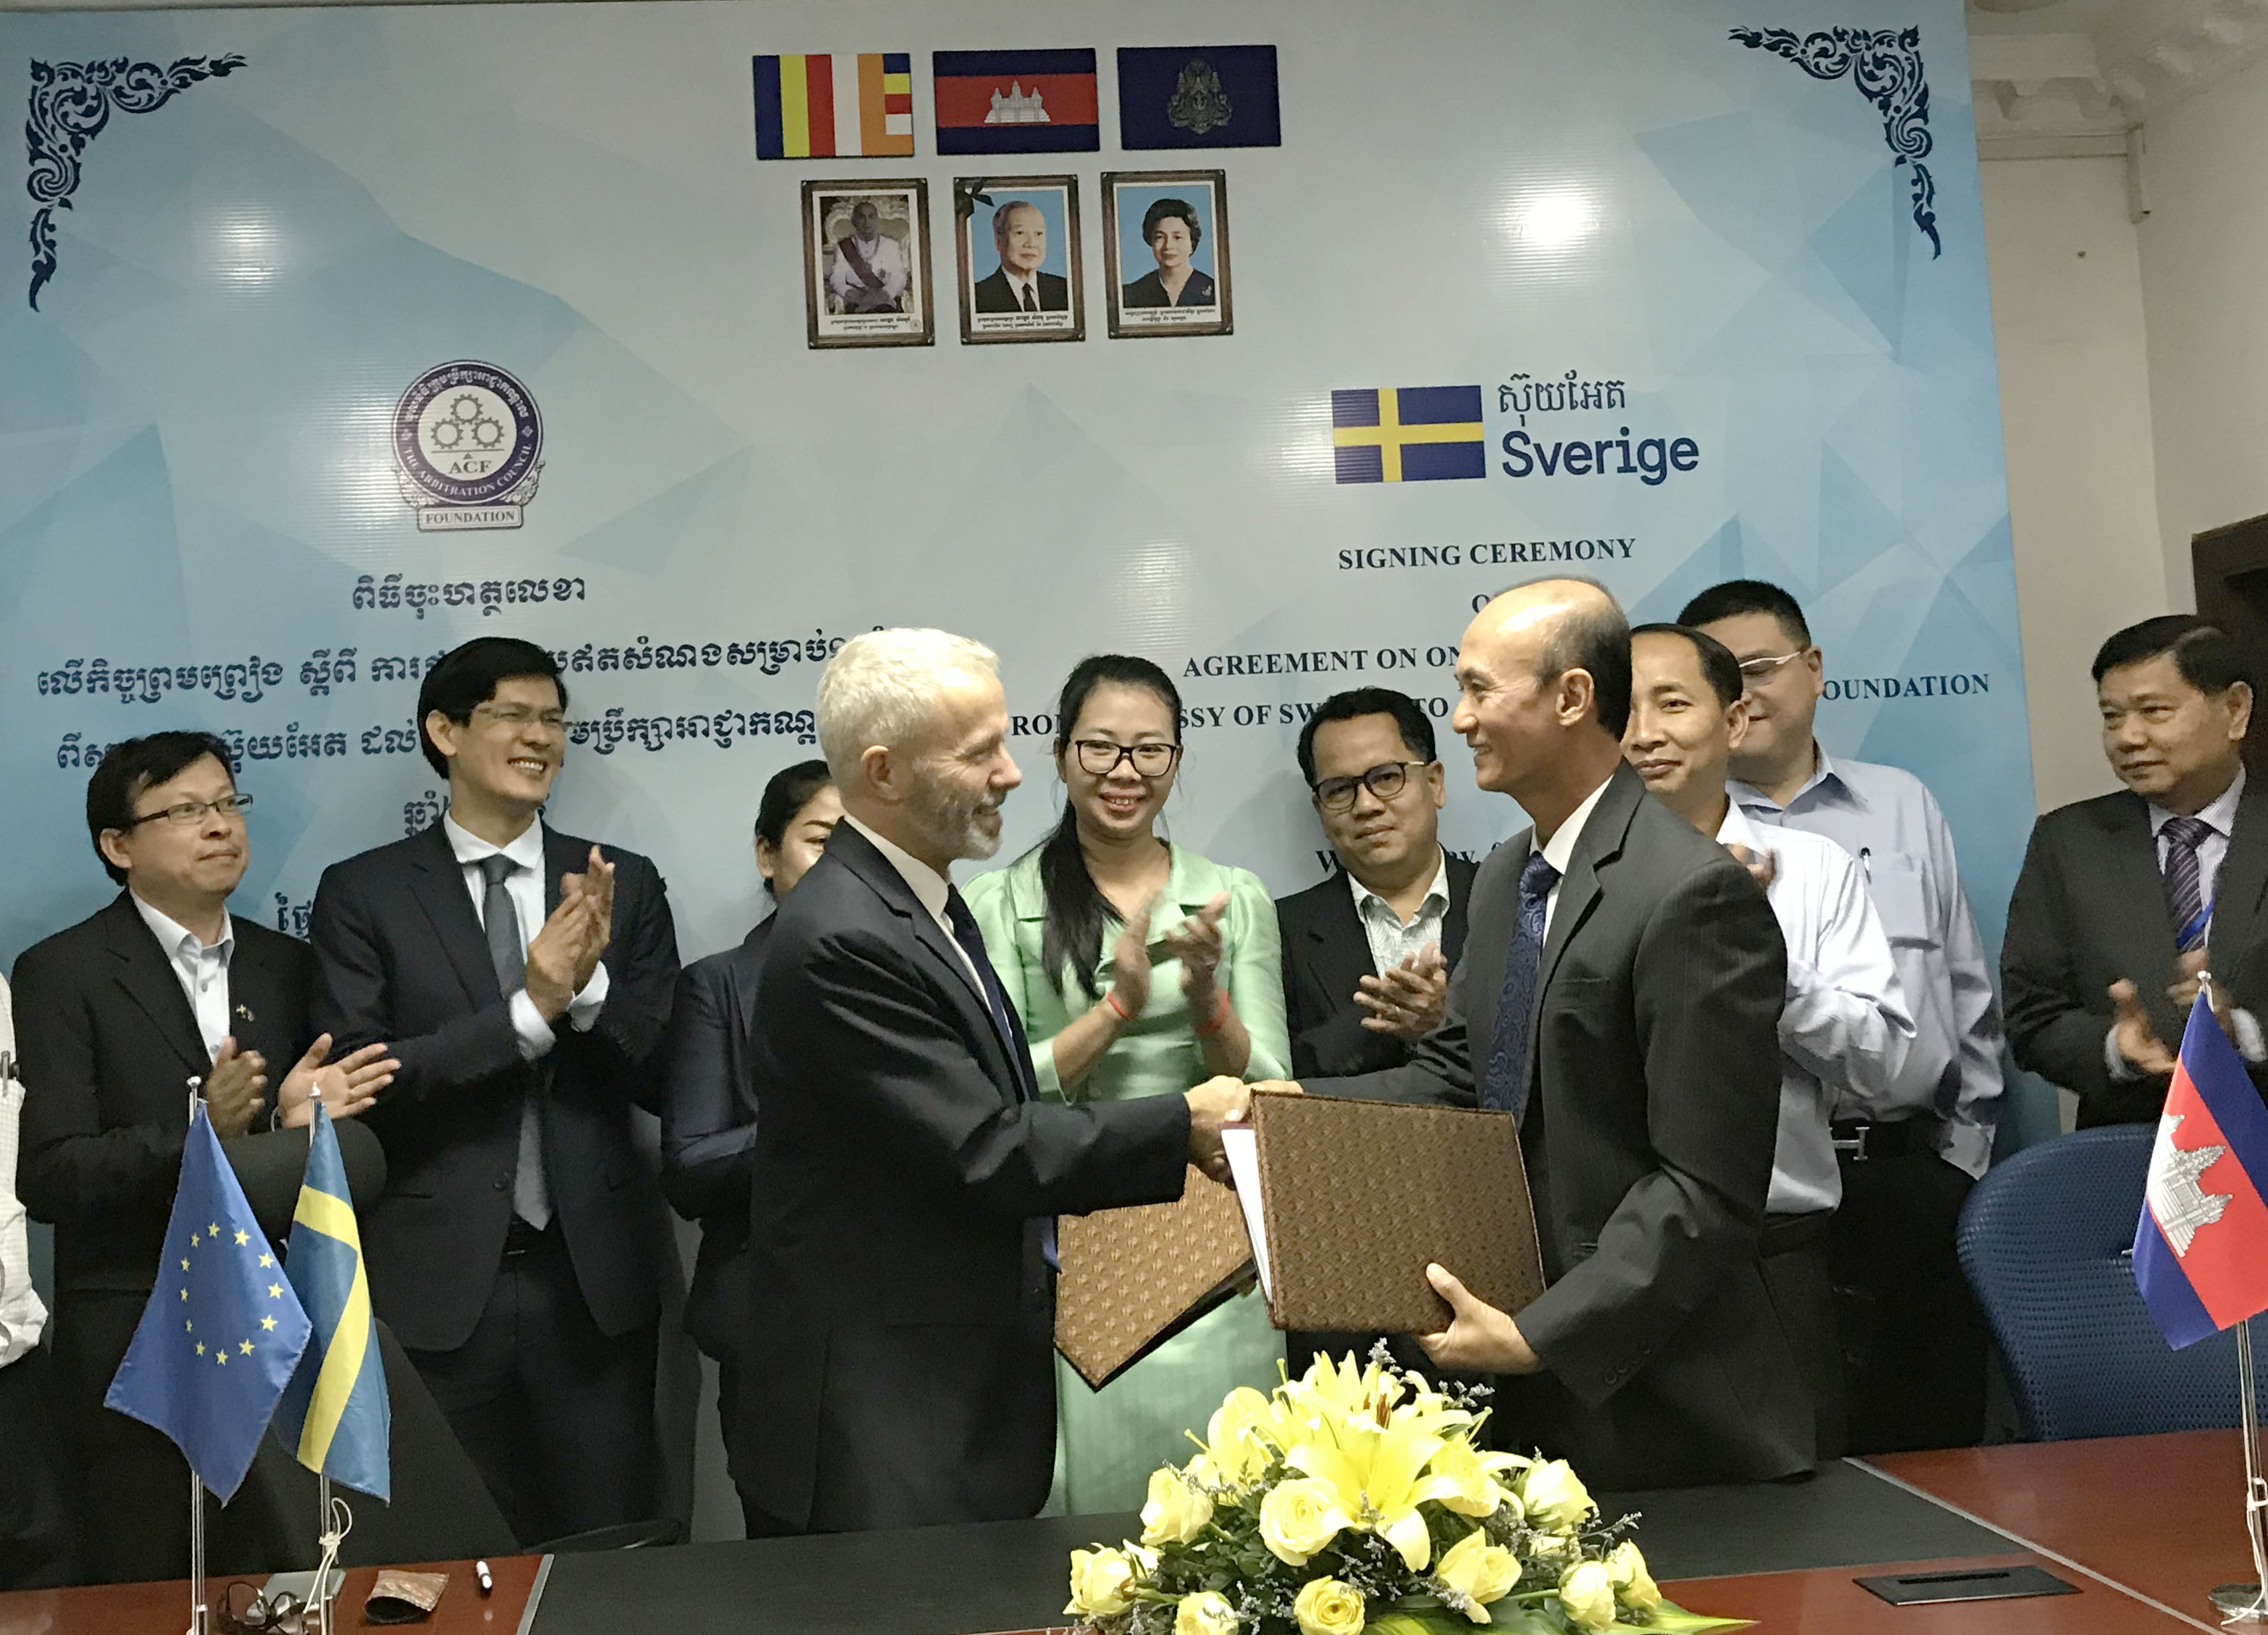 Image of signing ceremony between Sweden and Arbitration Council Foundation.